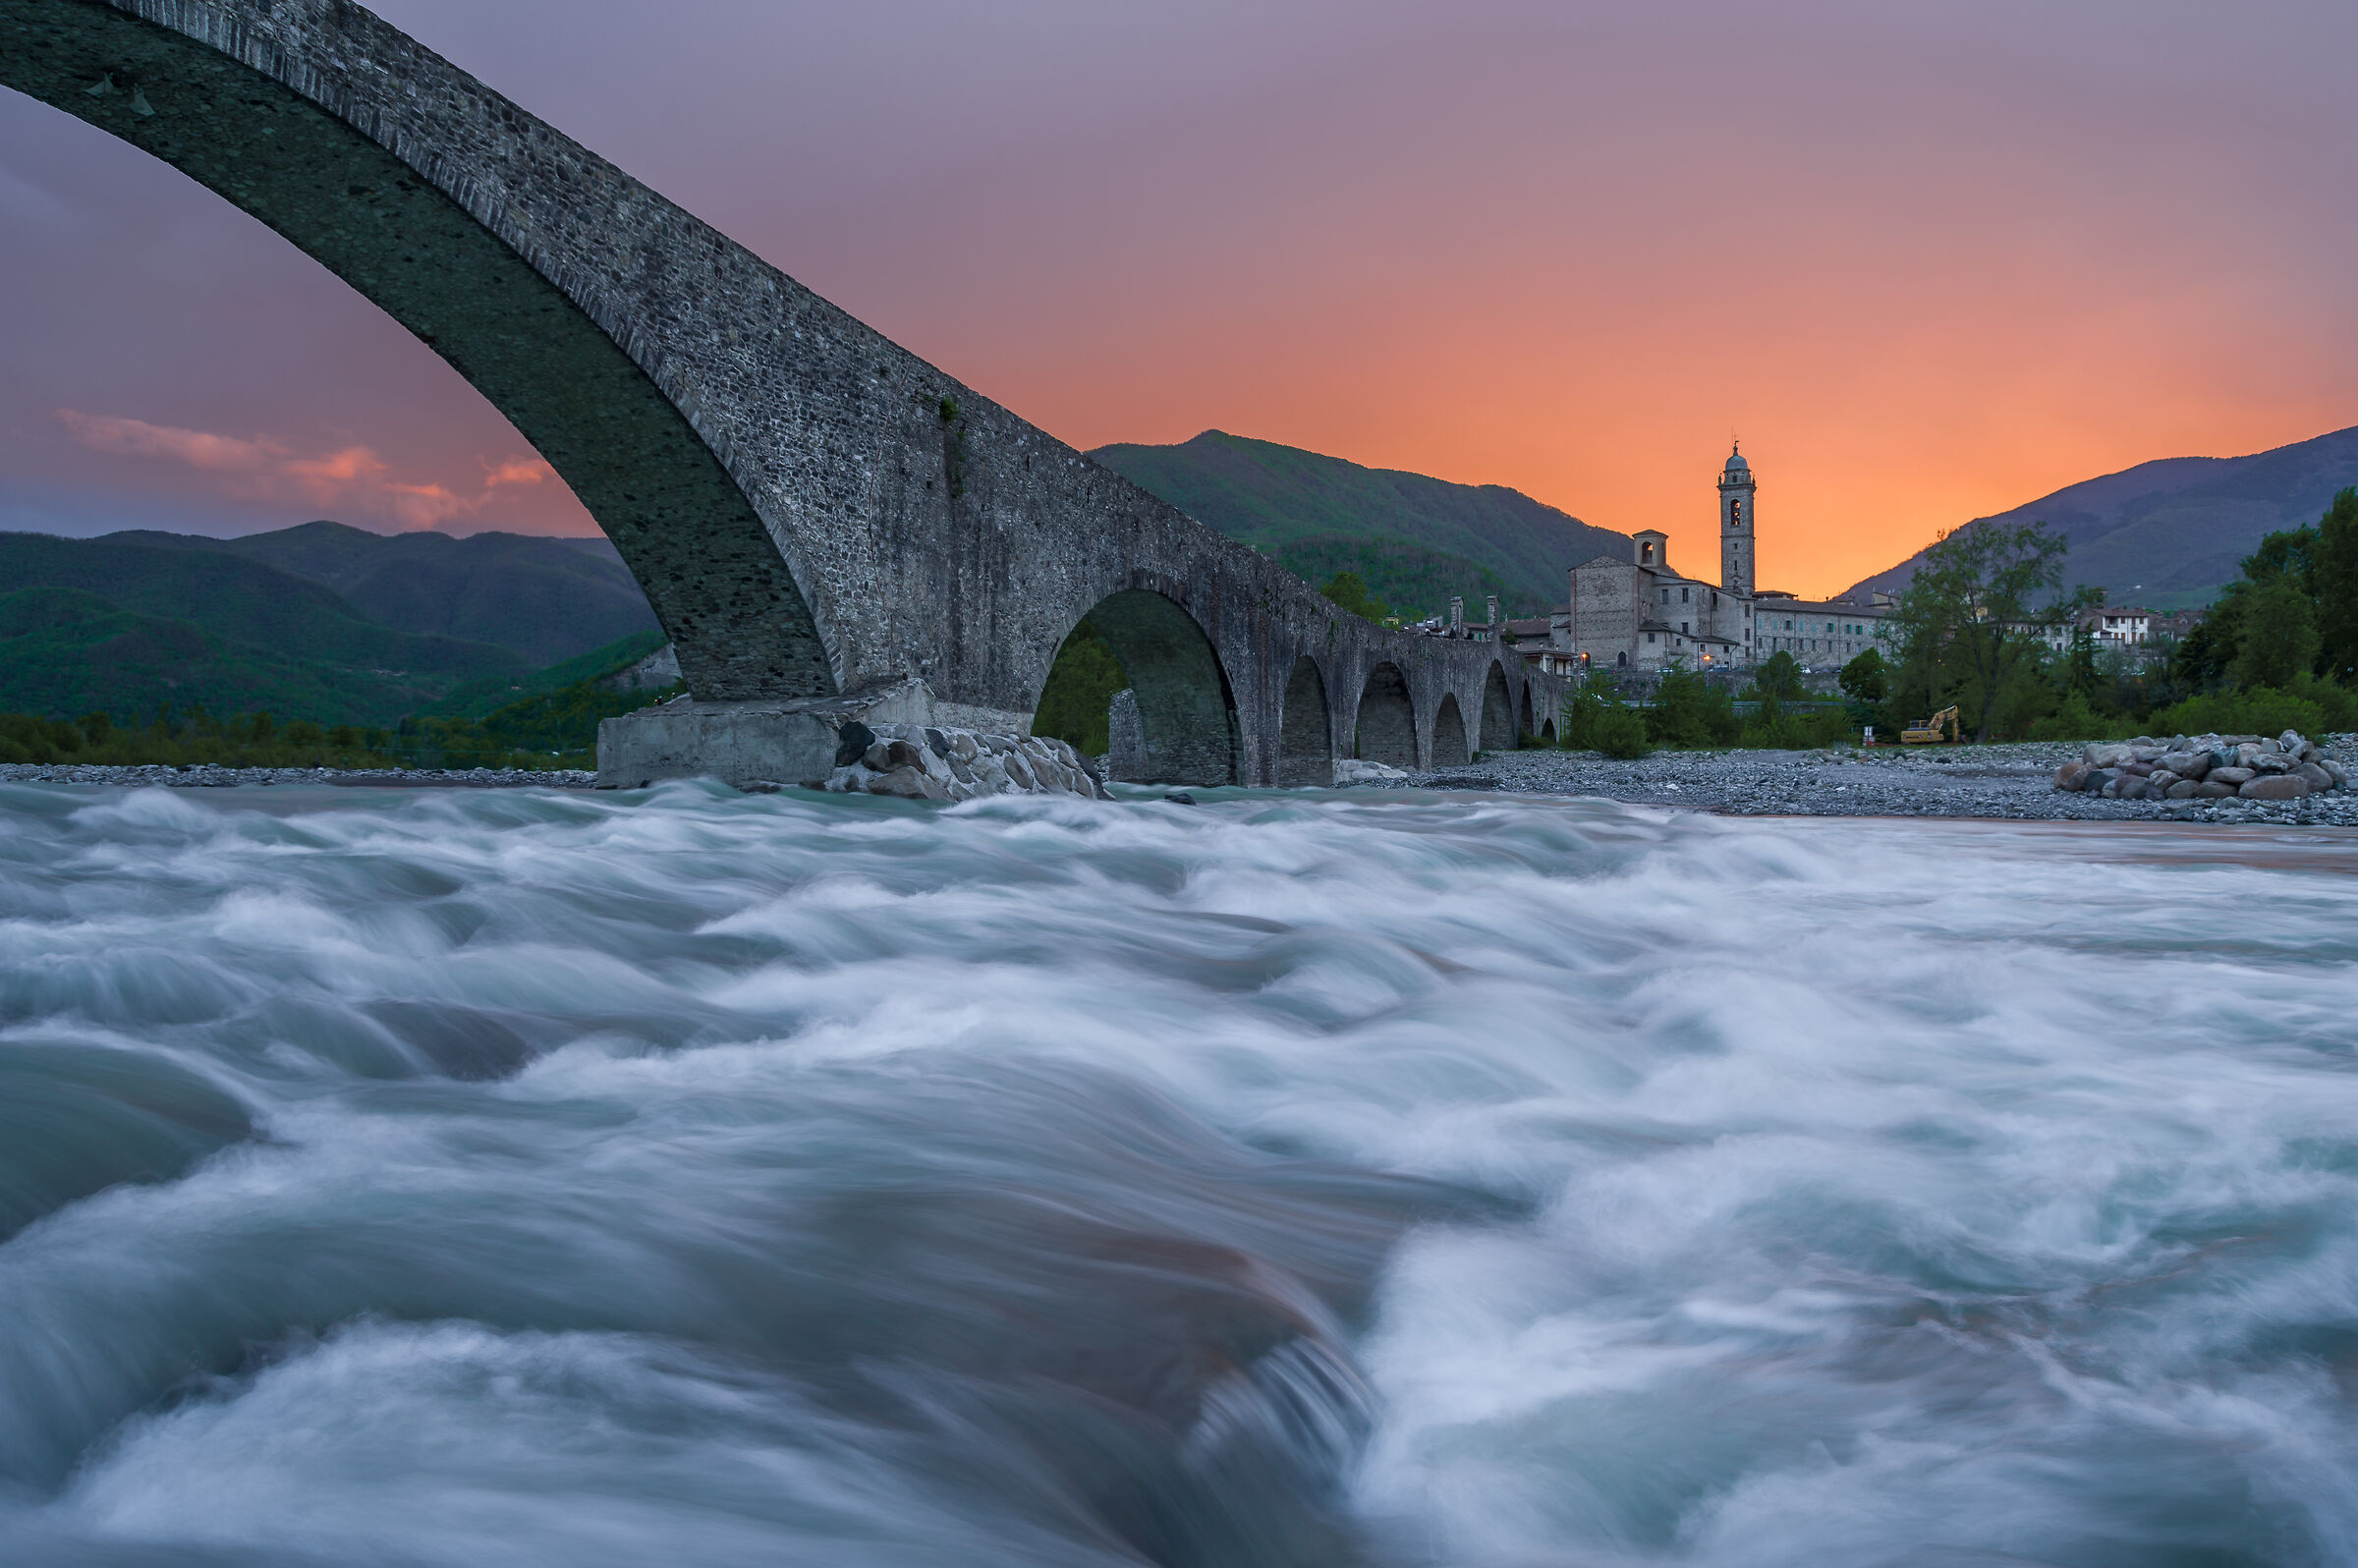 On the banks of the Trebbia...